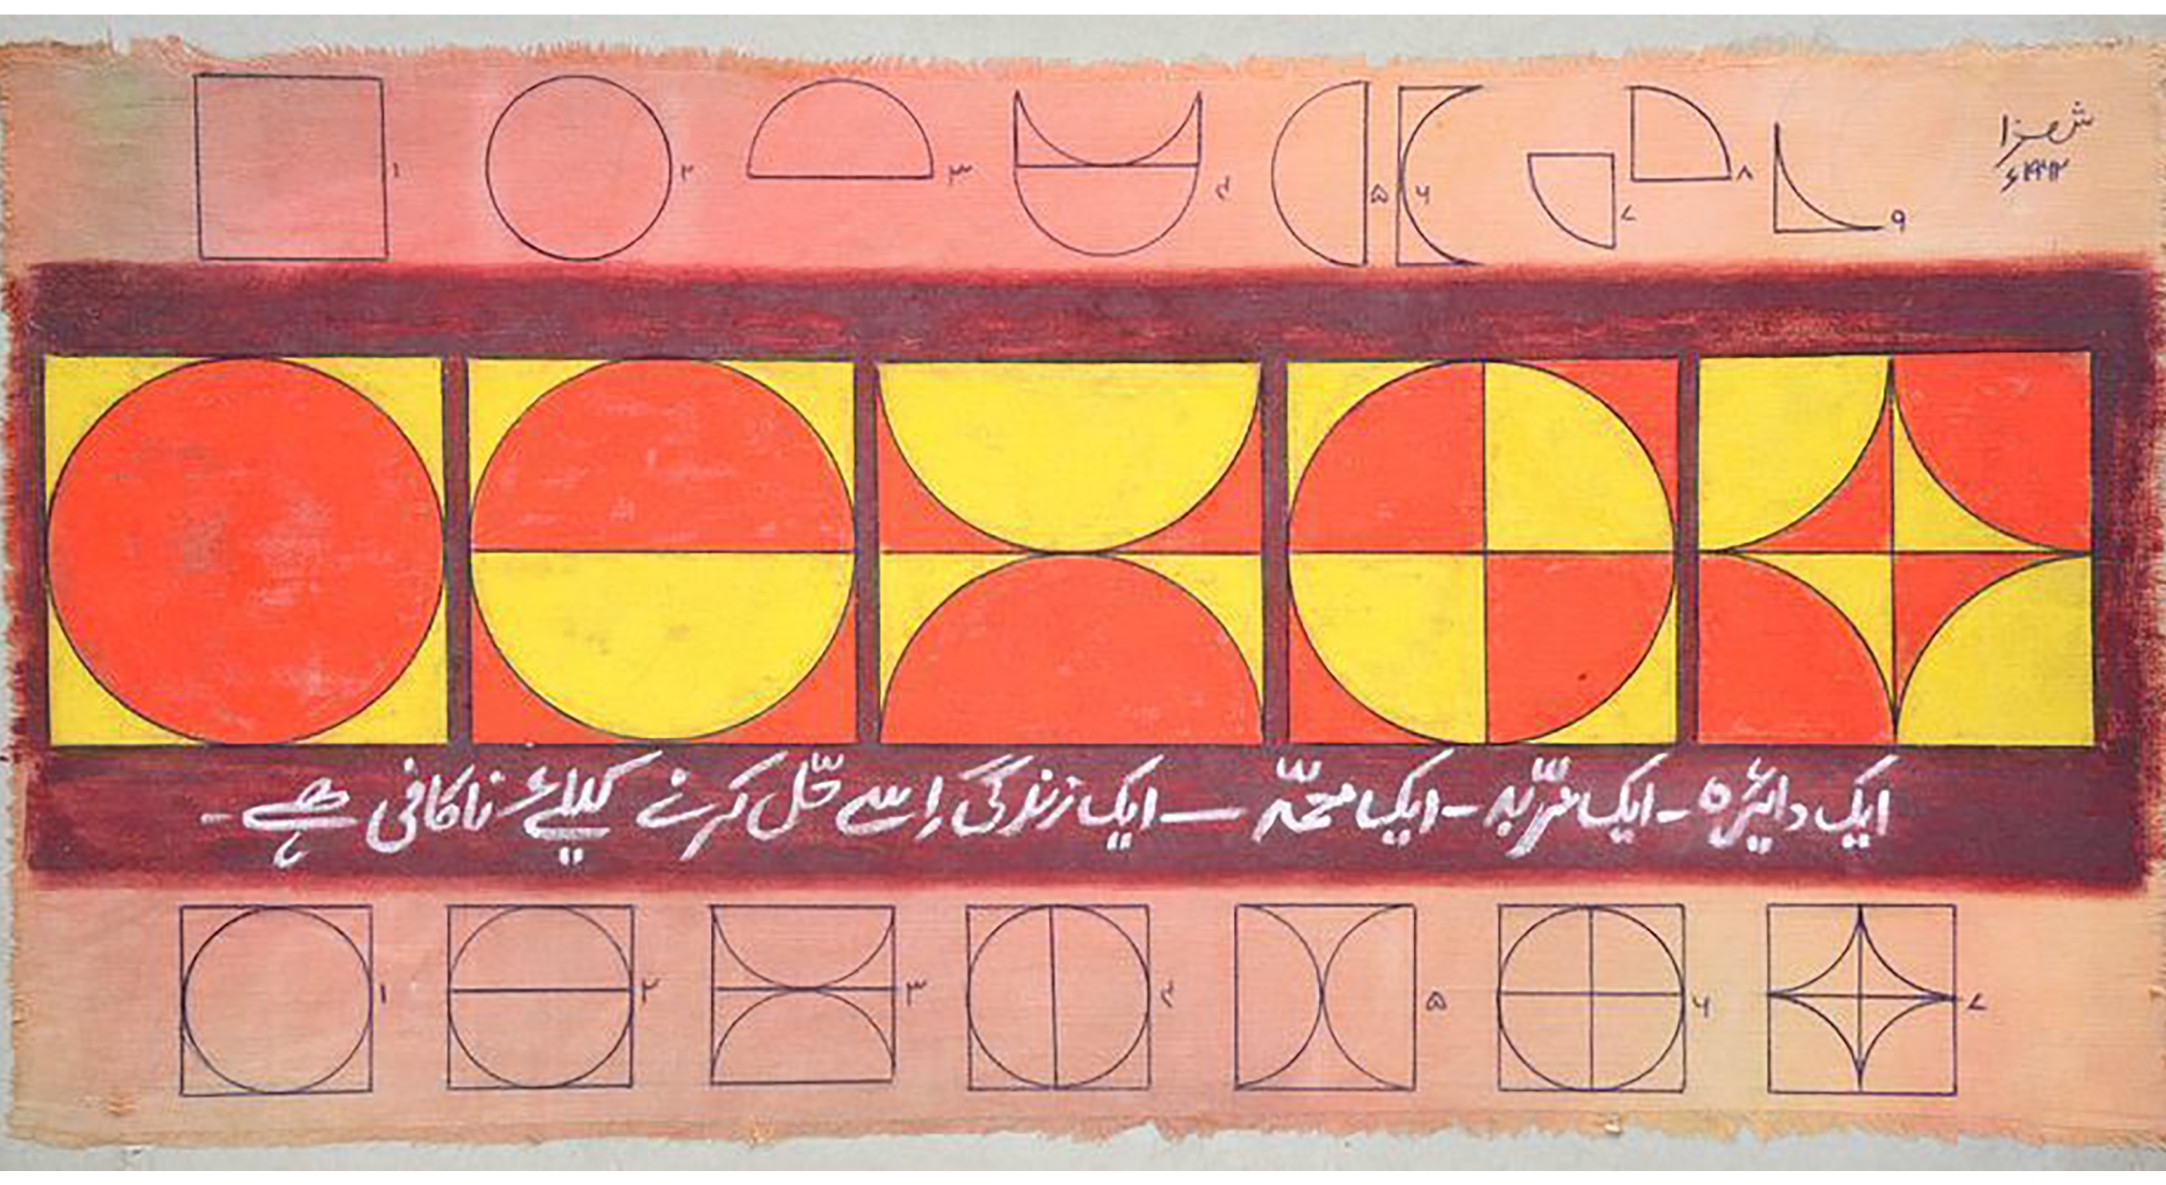 Anwar Jalal Shemza, One to Nine and One to Seven, 1962, Oil on hand-dyed cloth, mounted on board and hardboard, 30.2 x 55.5 cm, 11 7/8 x 21 7/8 in